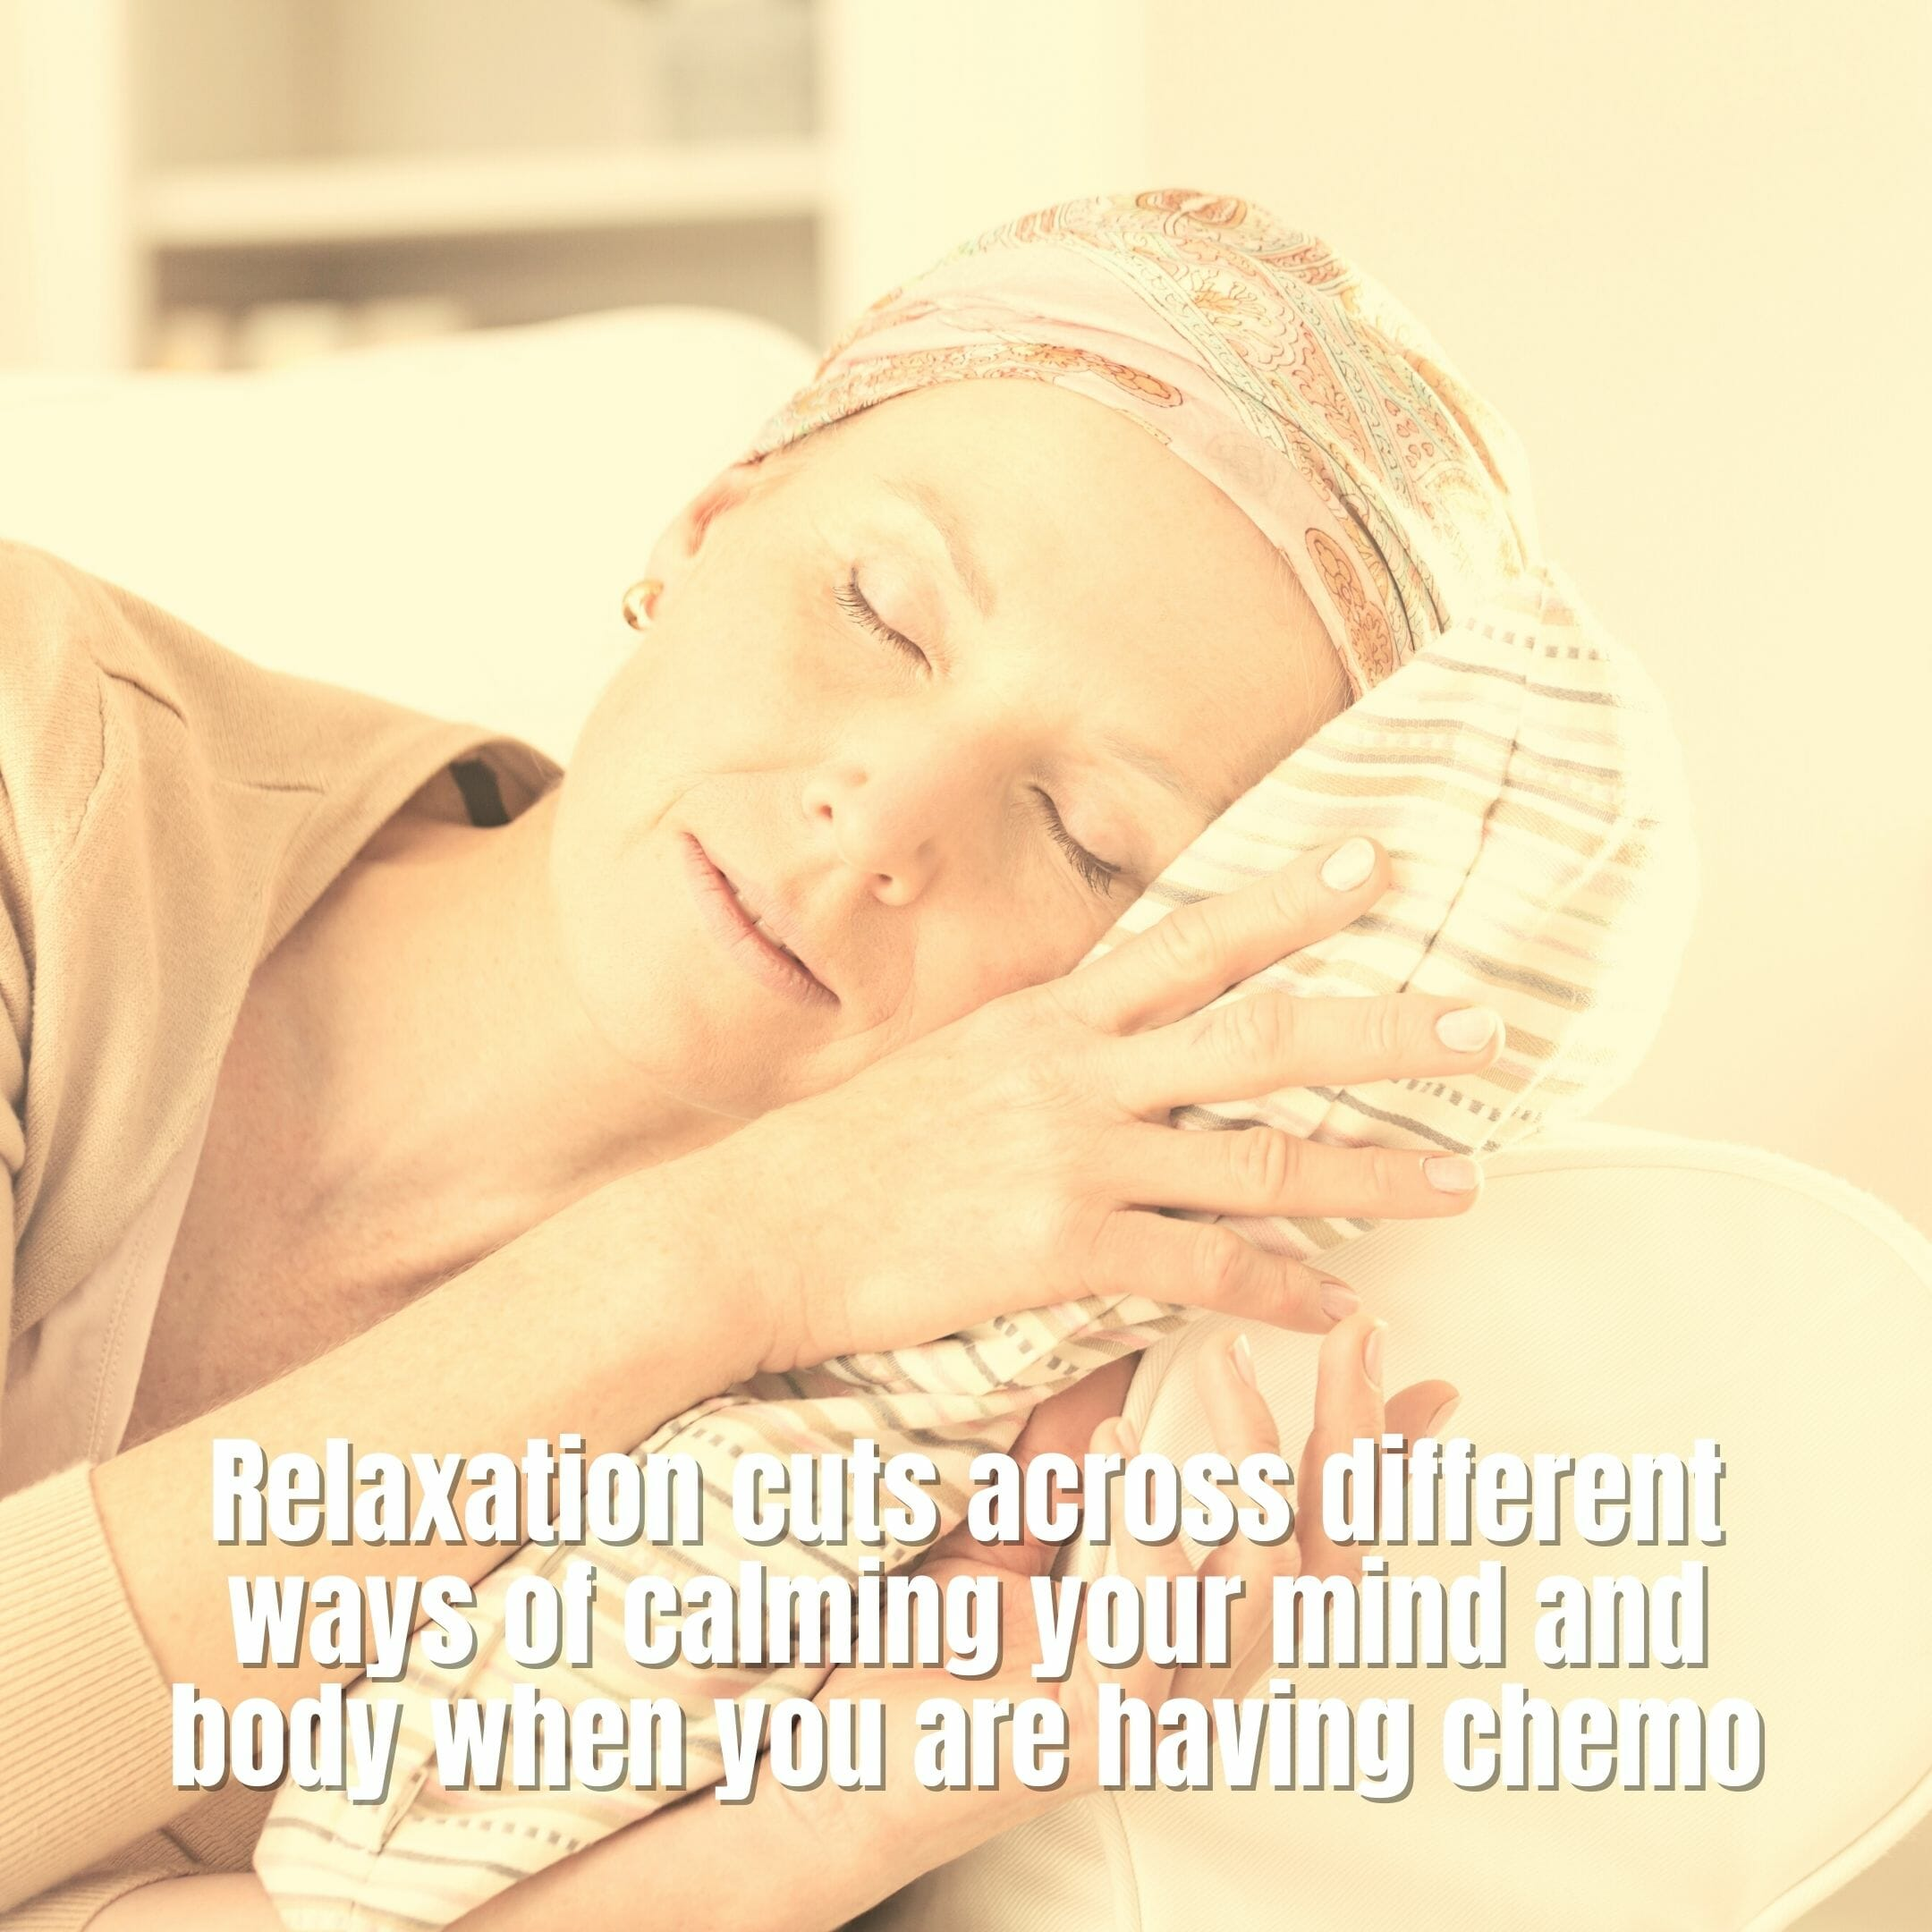 Relaxation Cuts Across Different Ways Of Calming Your Mind And Body - Chemotherapy Side Effects: Dealing With Short And Long Term Issues